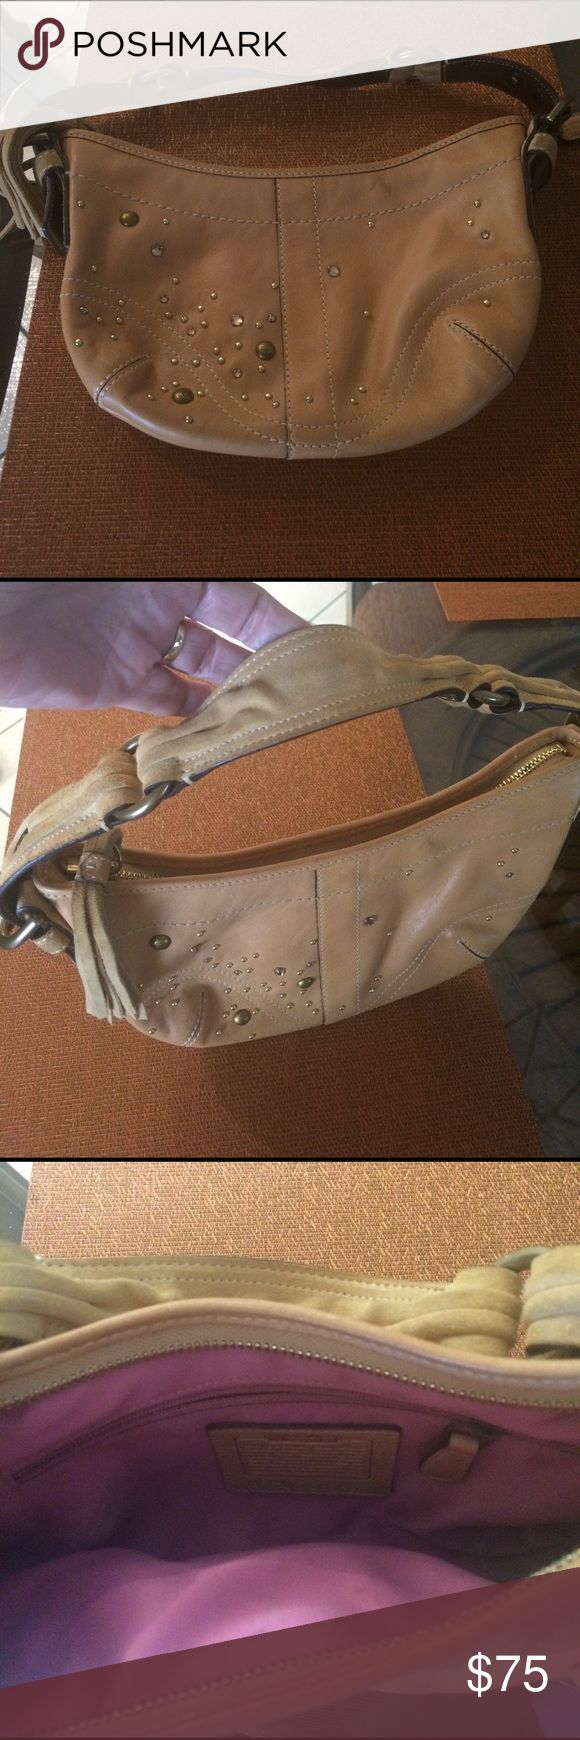 Embellished Coach hobo bag, A few sparkles and a few gold studs embellished this barely used Coach bag. Coach Bags Shoulder Bags